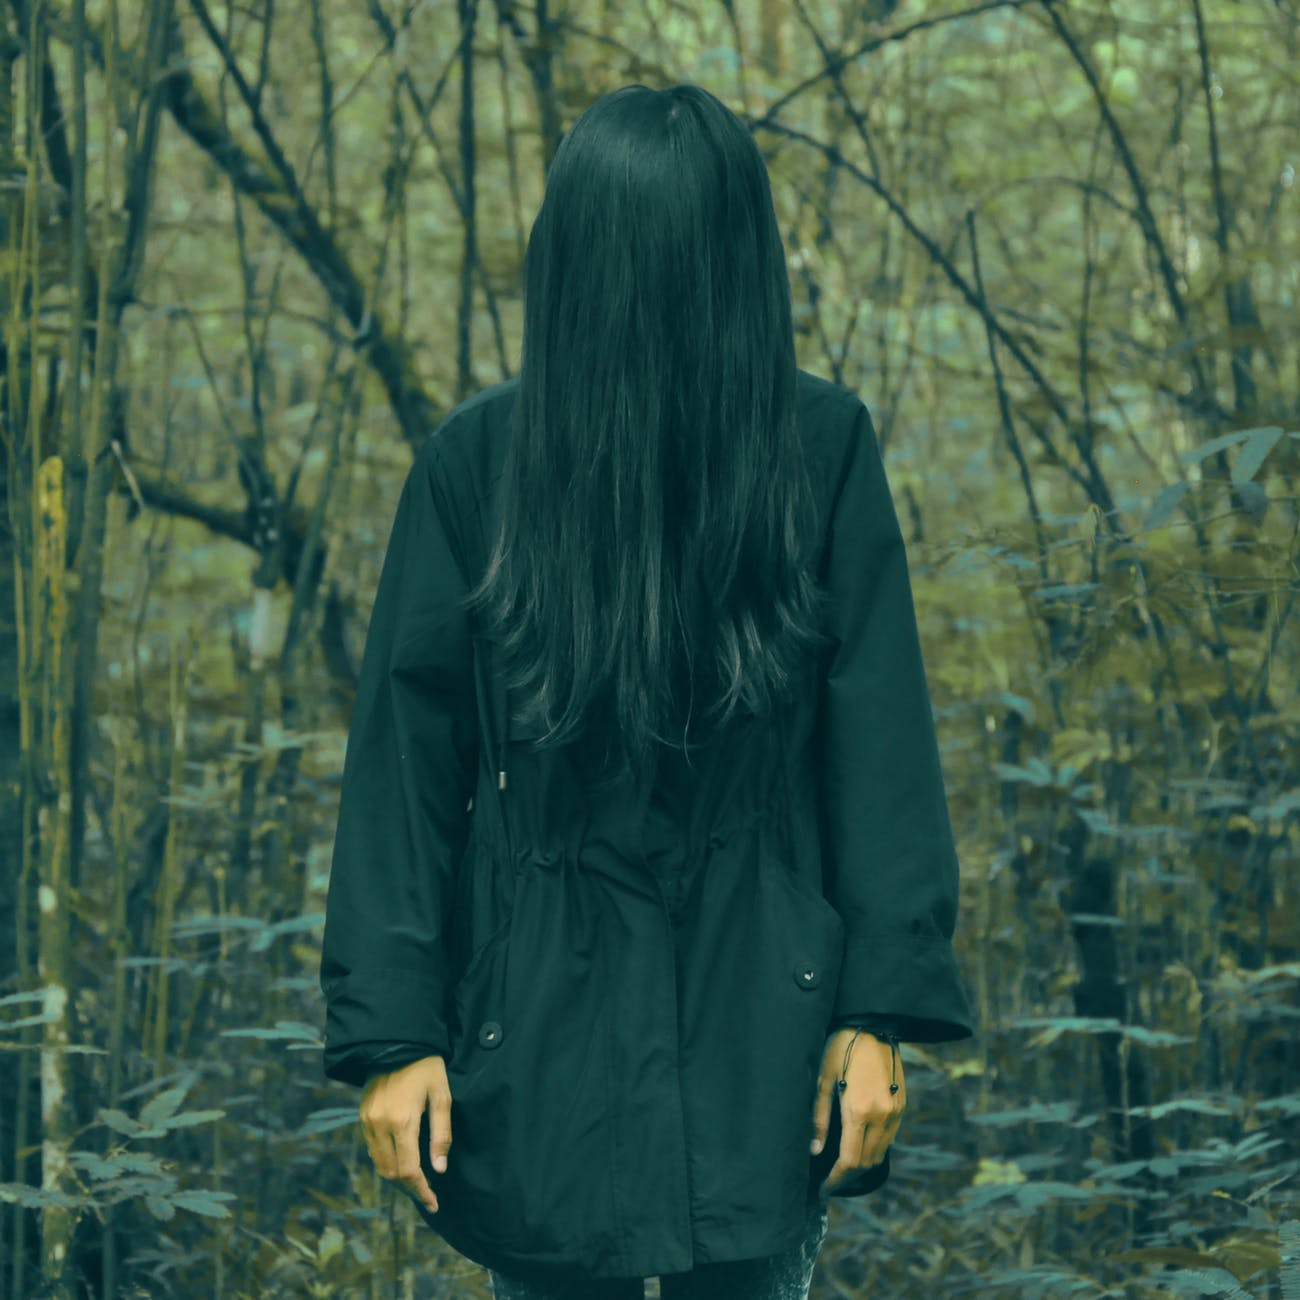 Colour photograph of a woman standing in a black coat in a forest. Her face is completely covered by her long black hair.